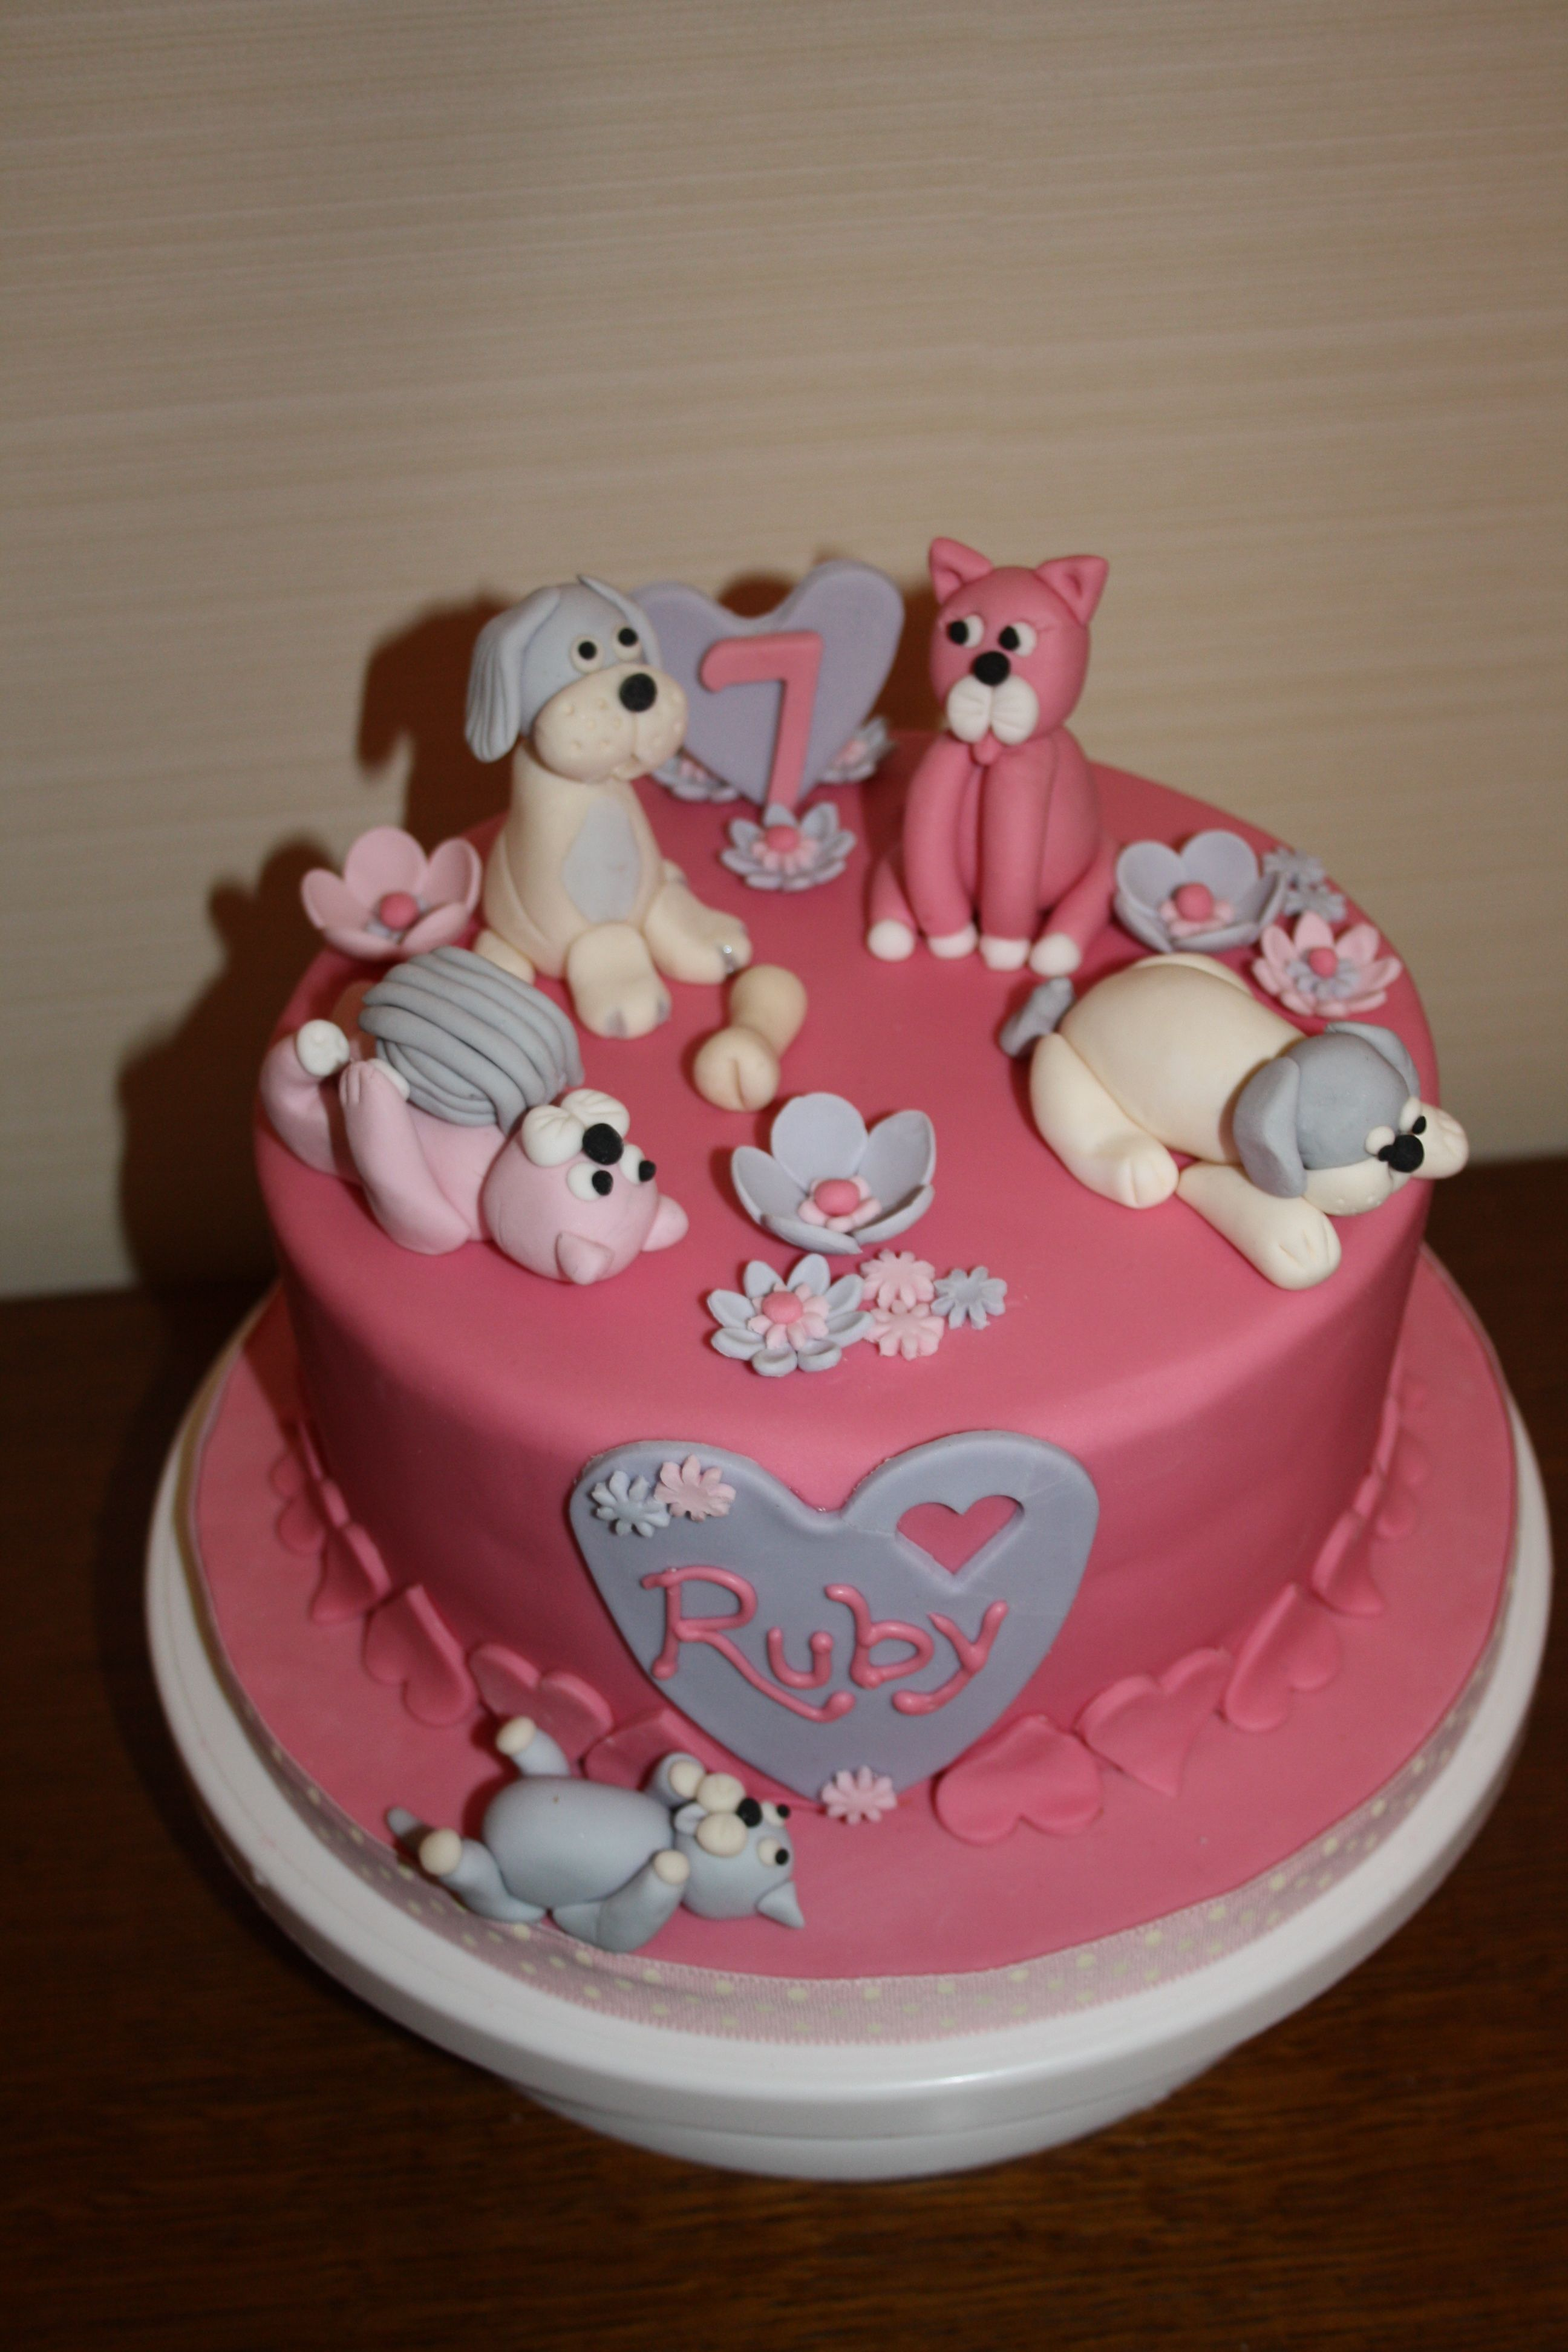 A Birthday Cake For A Very Cute 7 Year Old Who Loves Dogs